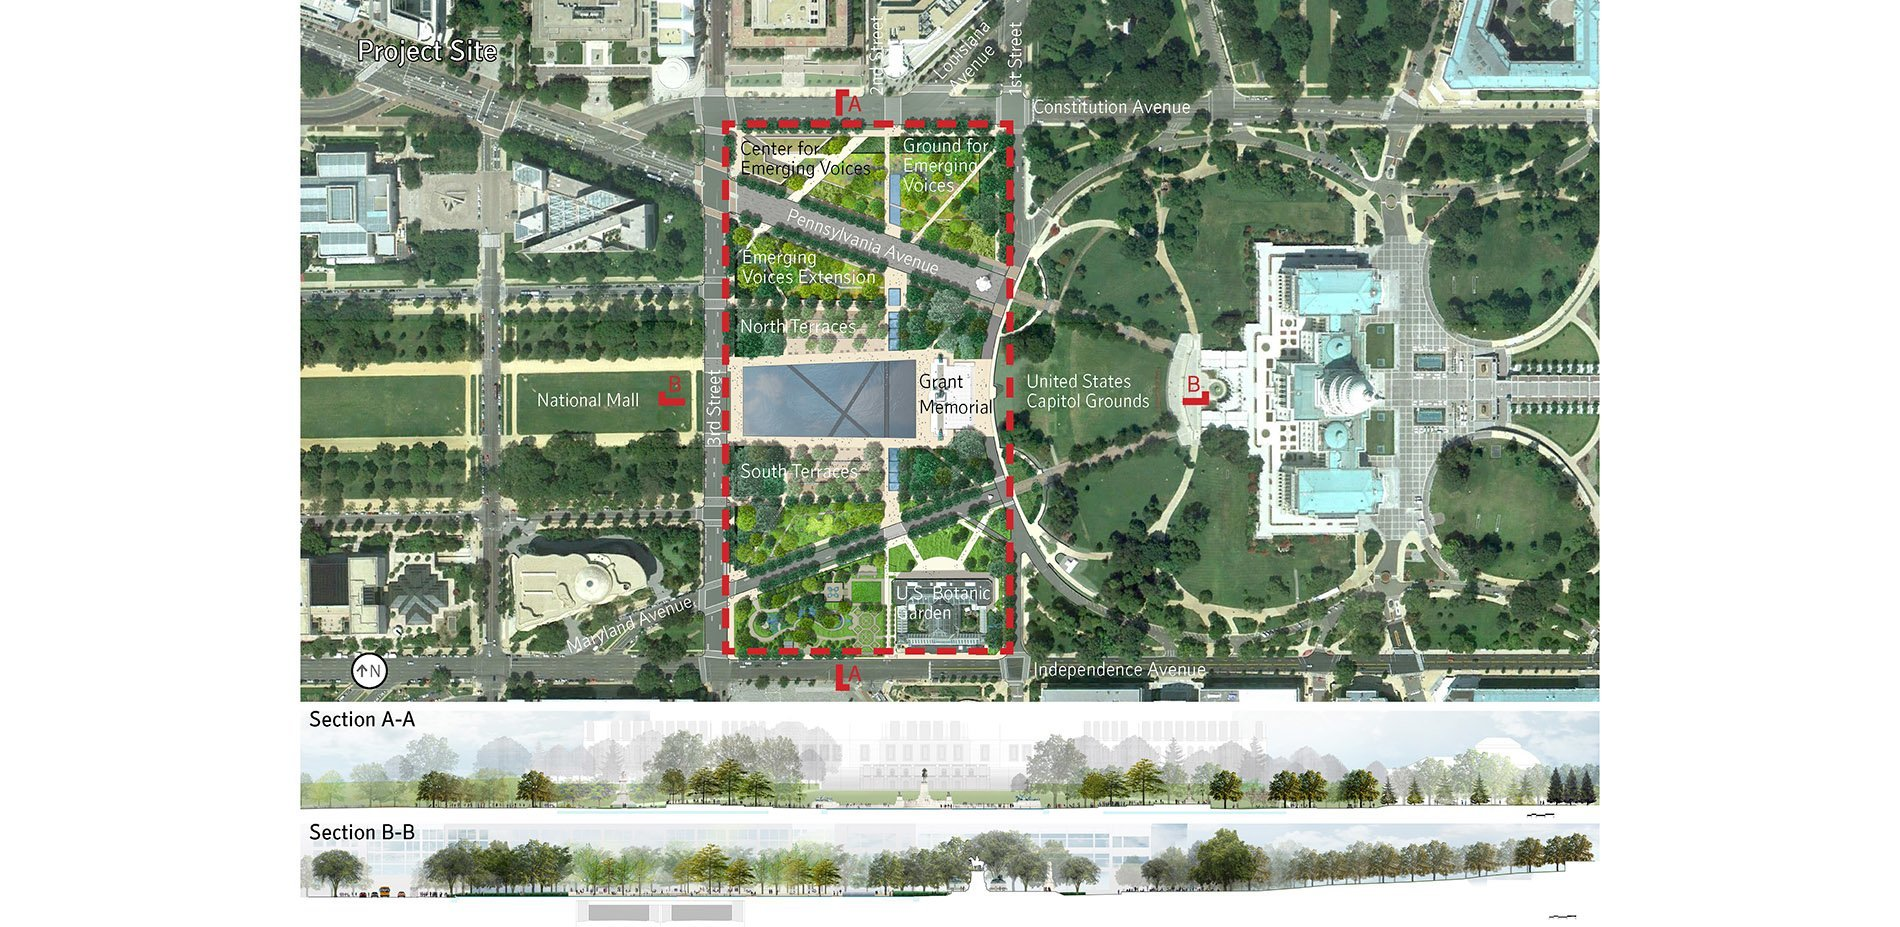 Unified Ground Union Square National Mall Competition 2014